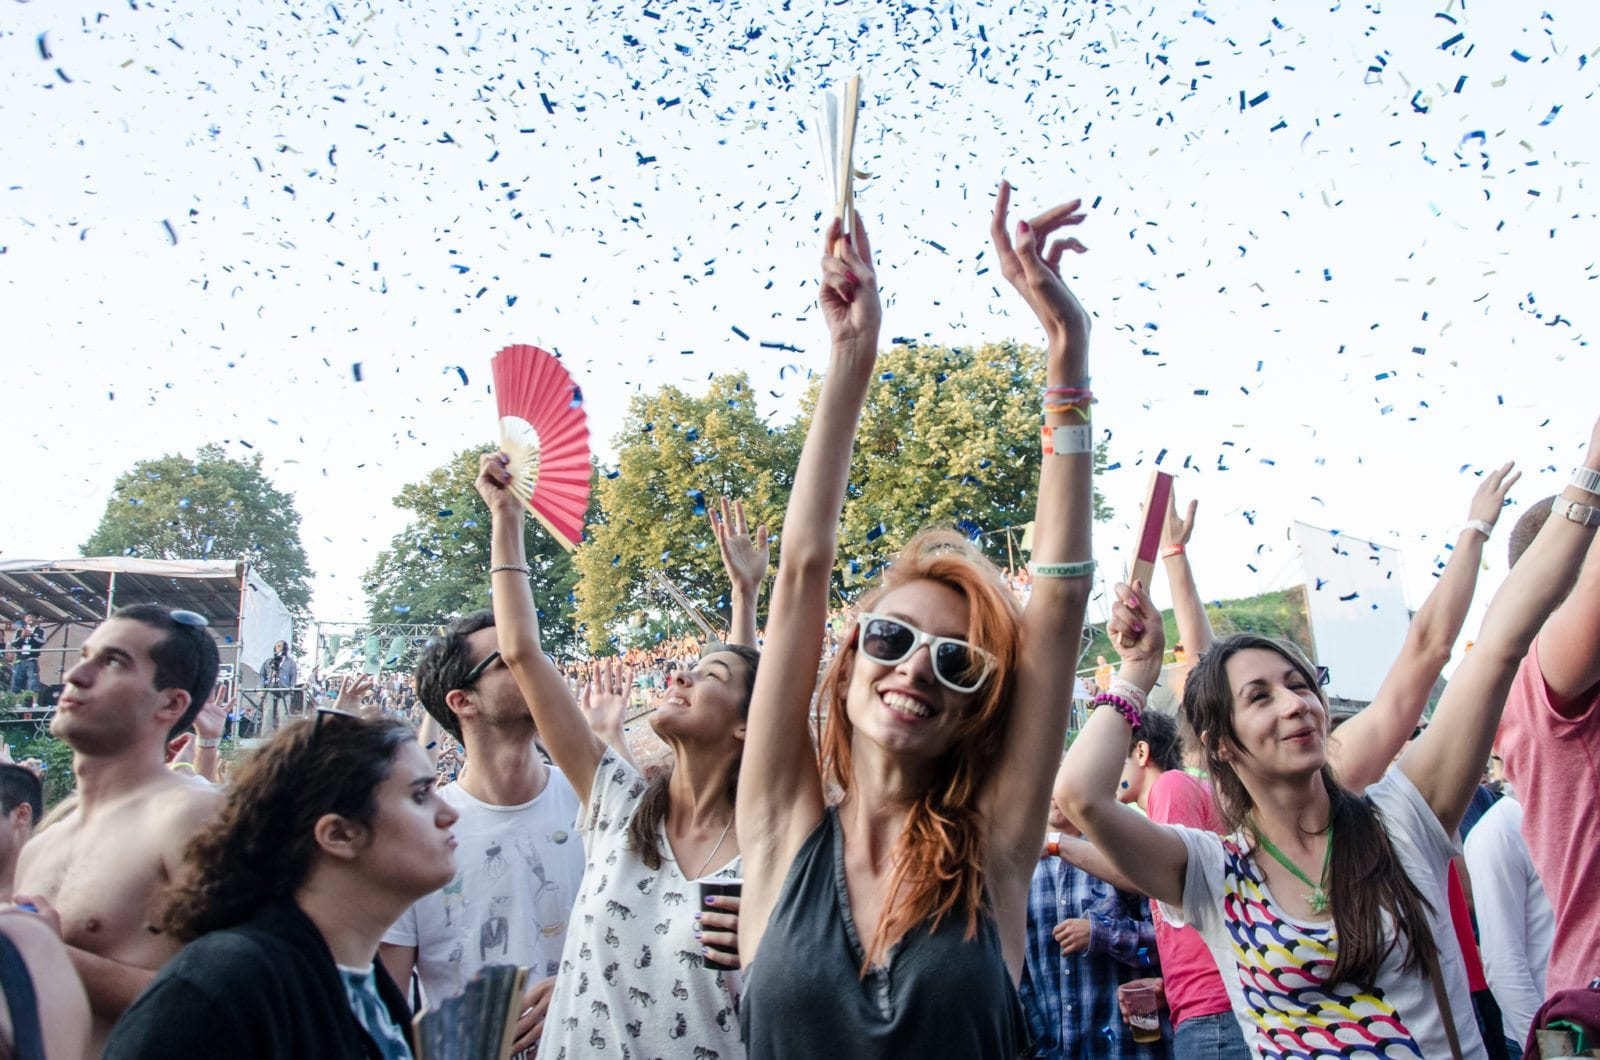 First Acts Announced for EXIT 2014: Skrillex, Rudimental, Dub FX, Koven